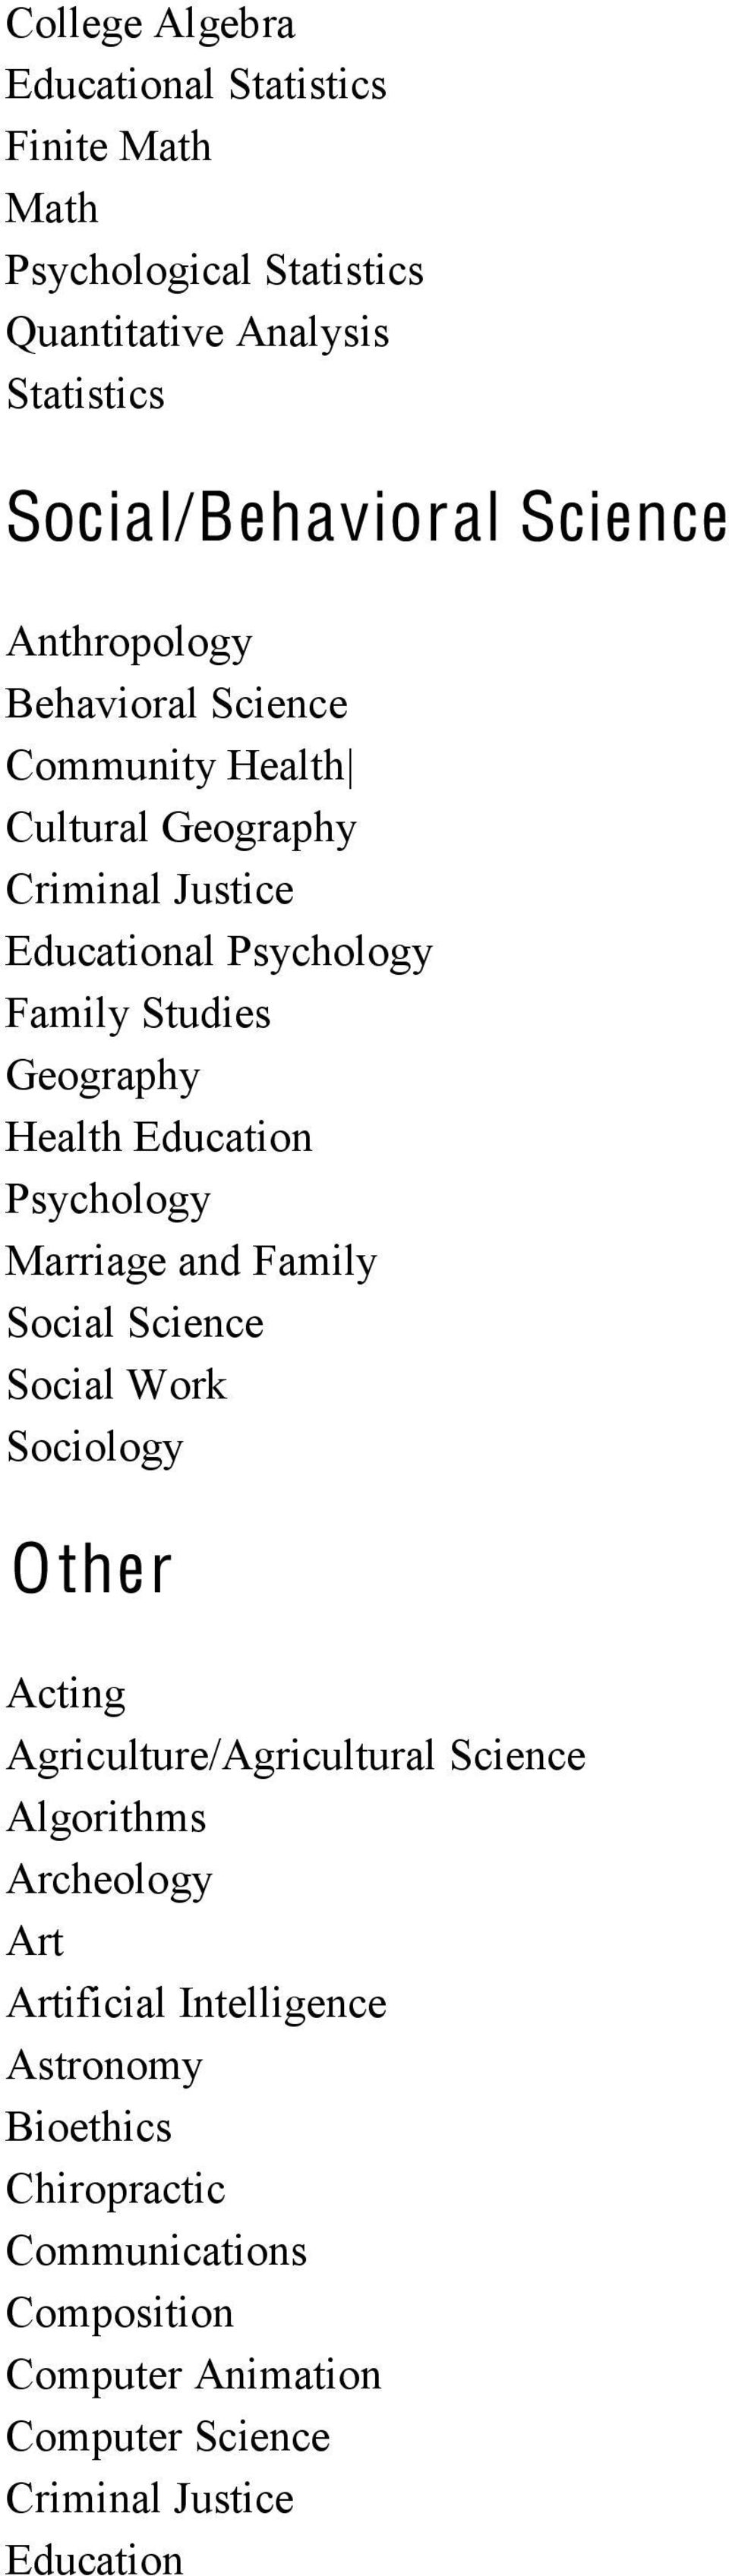 Education Psychology Marriage and Family Social Science Social Work Sociology Other Acting Agriculture/Agricultural Science Algorithms